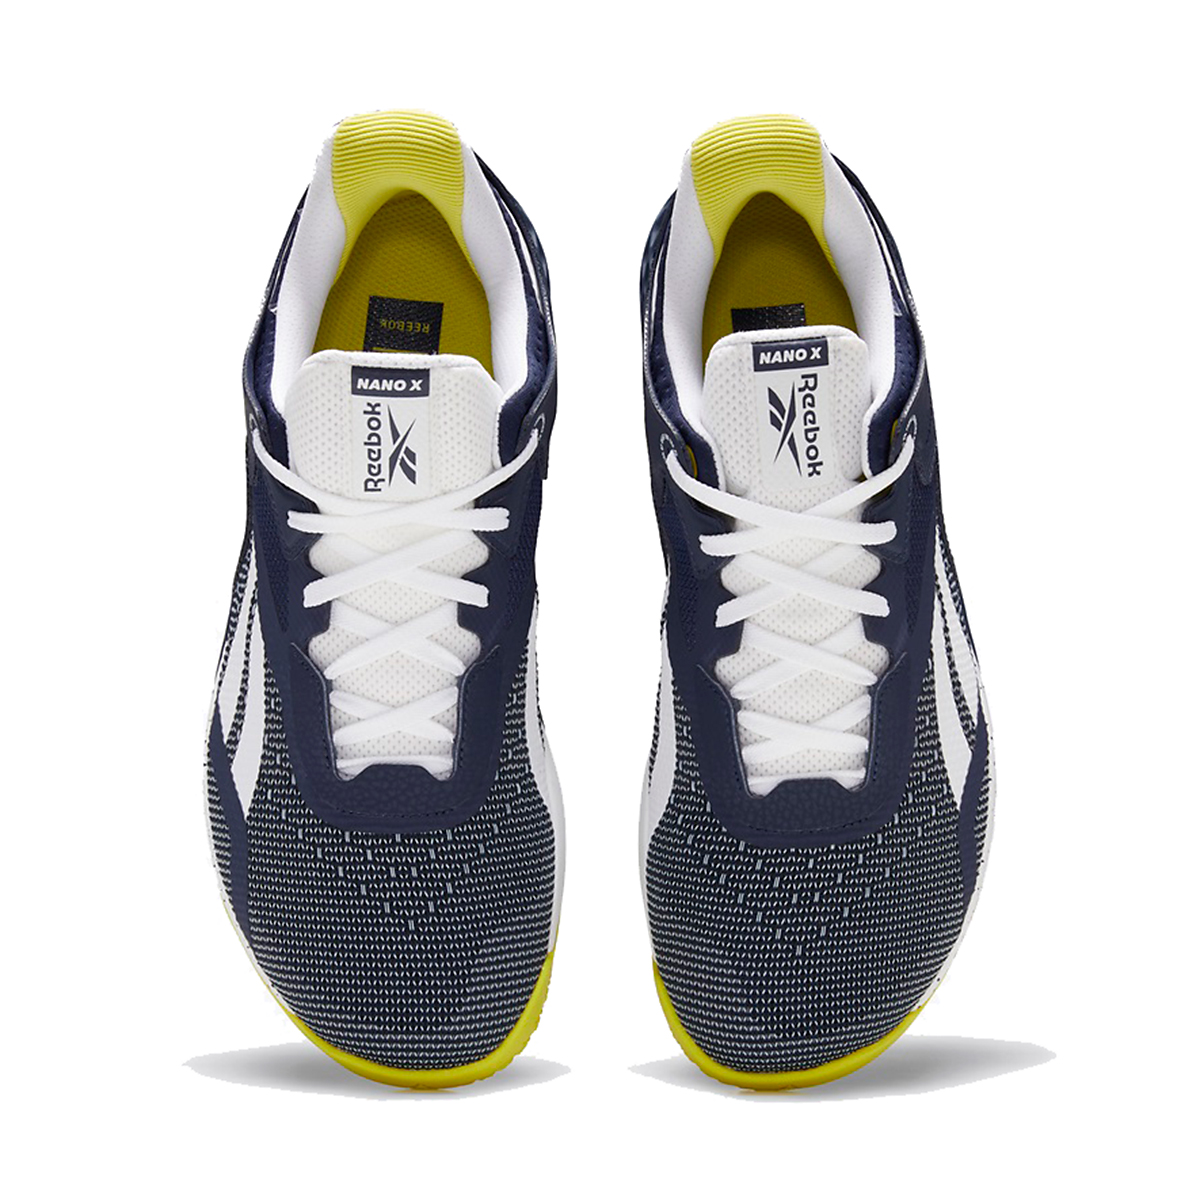 Men's Reebok Nano X Training Shoe - Color: Vector Navy/White/Chartreuse - Size: 6.5 - Width: Regular, Vector Navy/White/Chartreuse, large, image 4